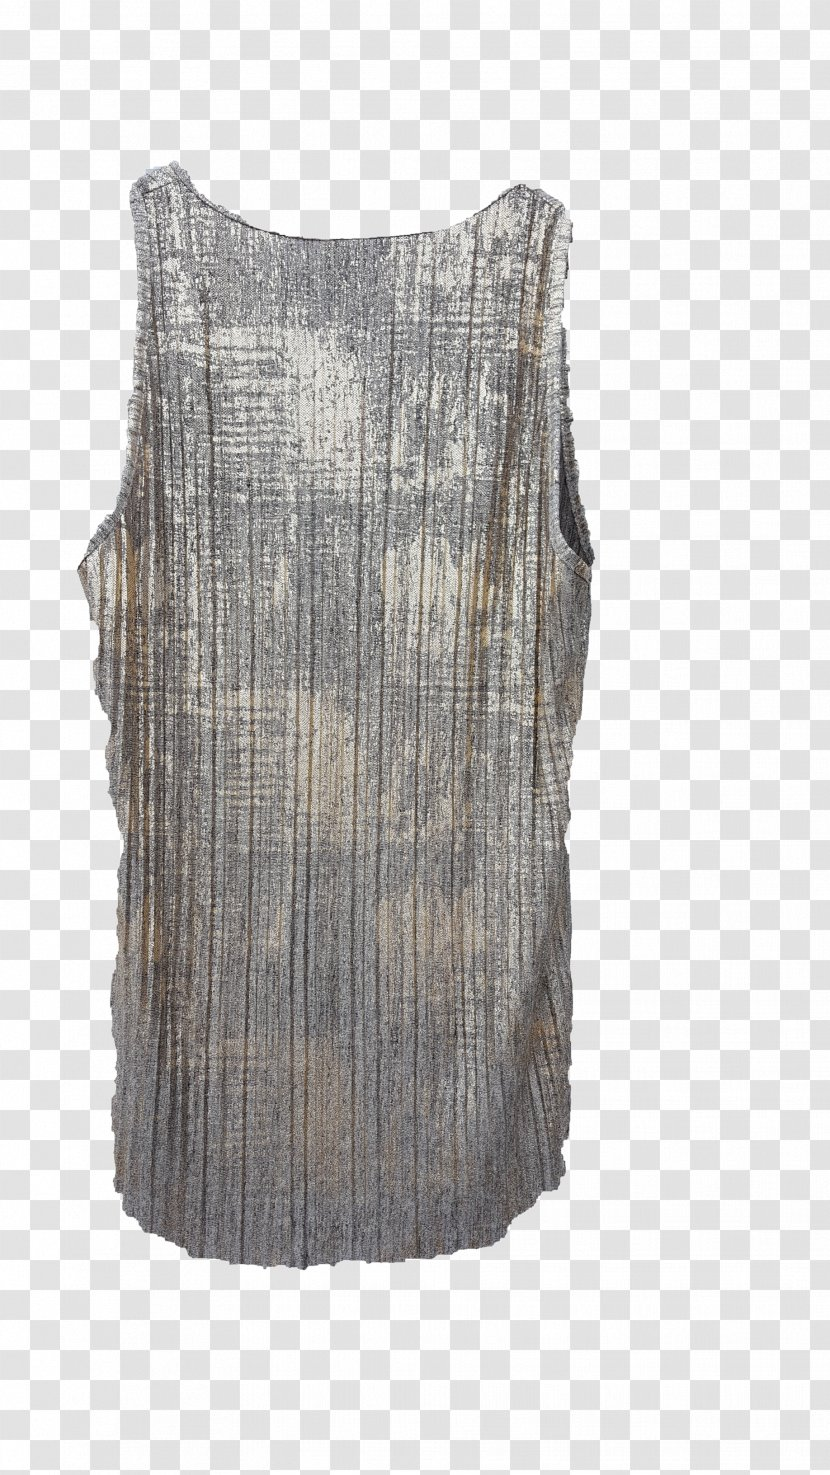 Sleeve - Be Yourself Fashionnl Transparent PNG